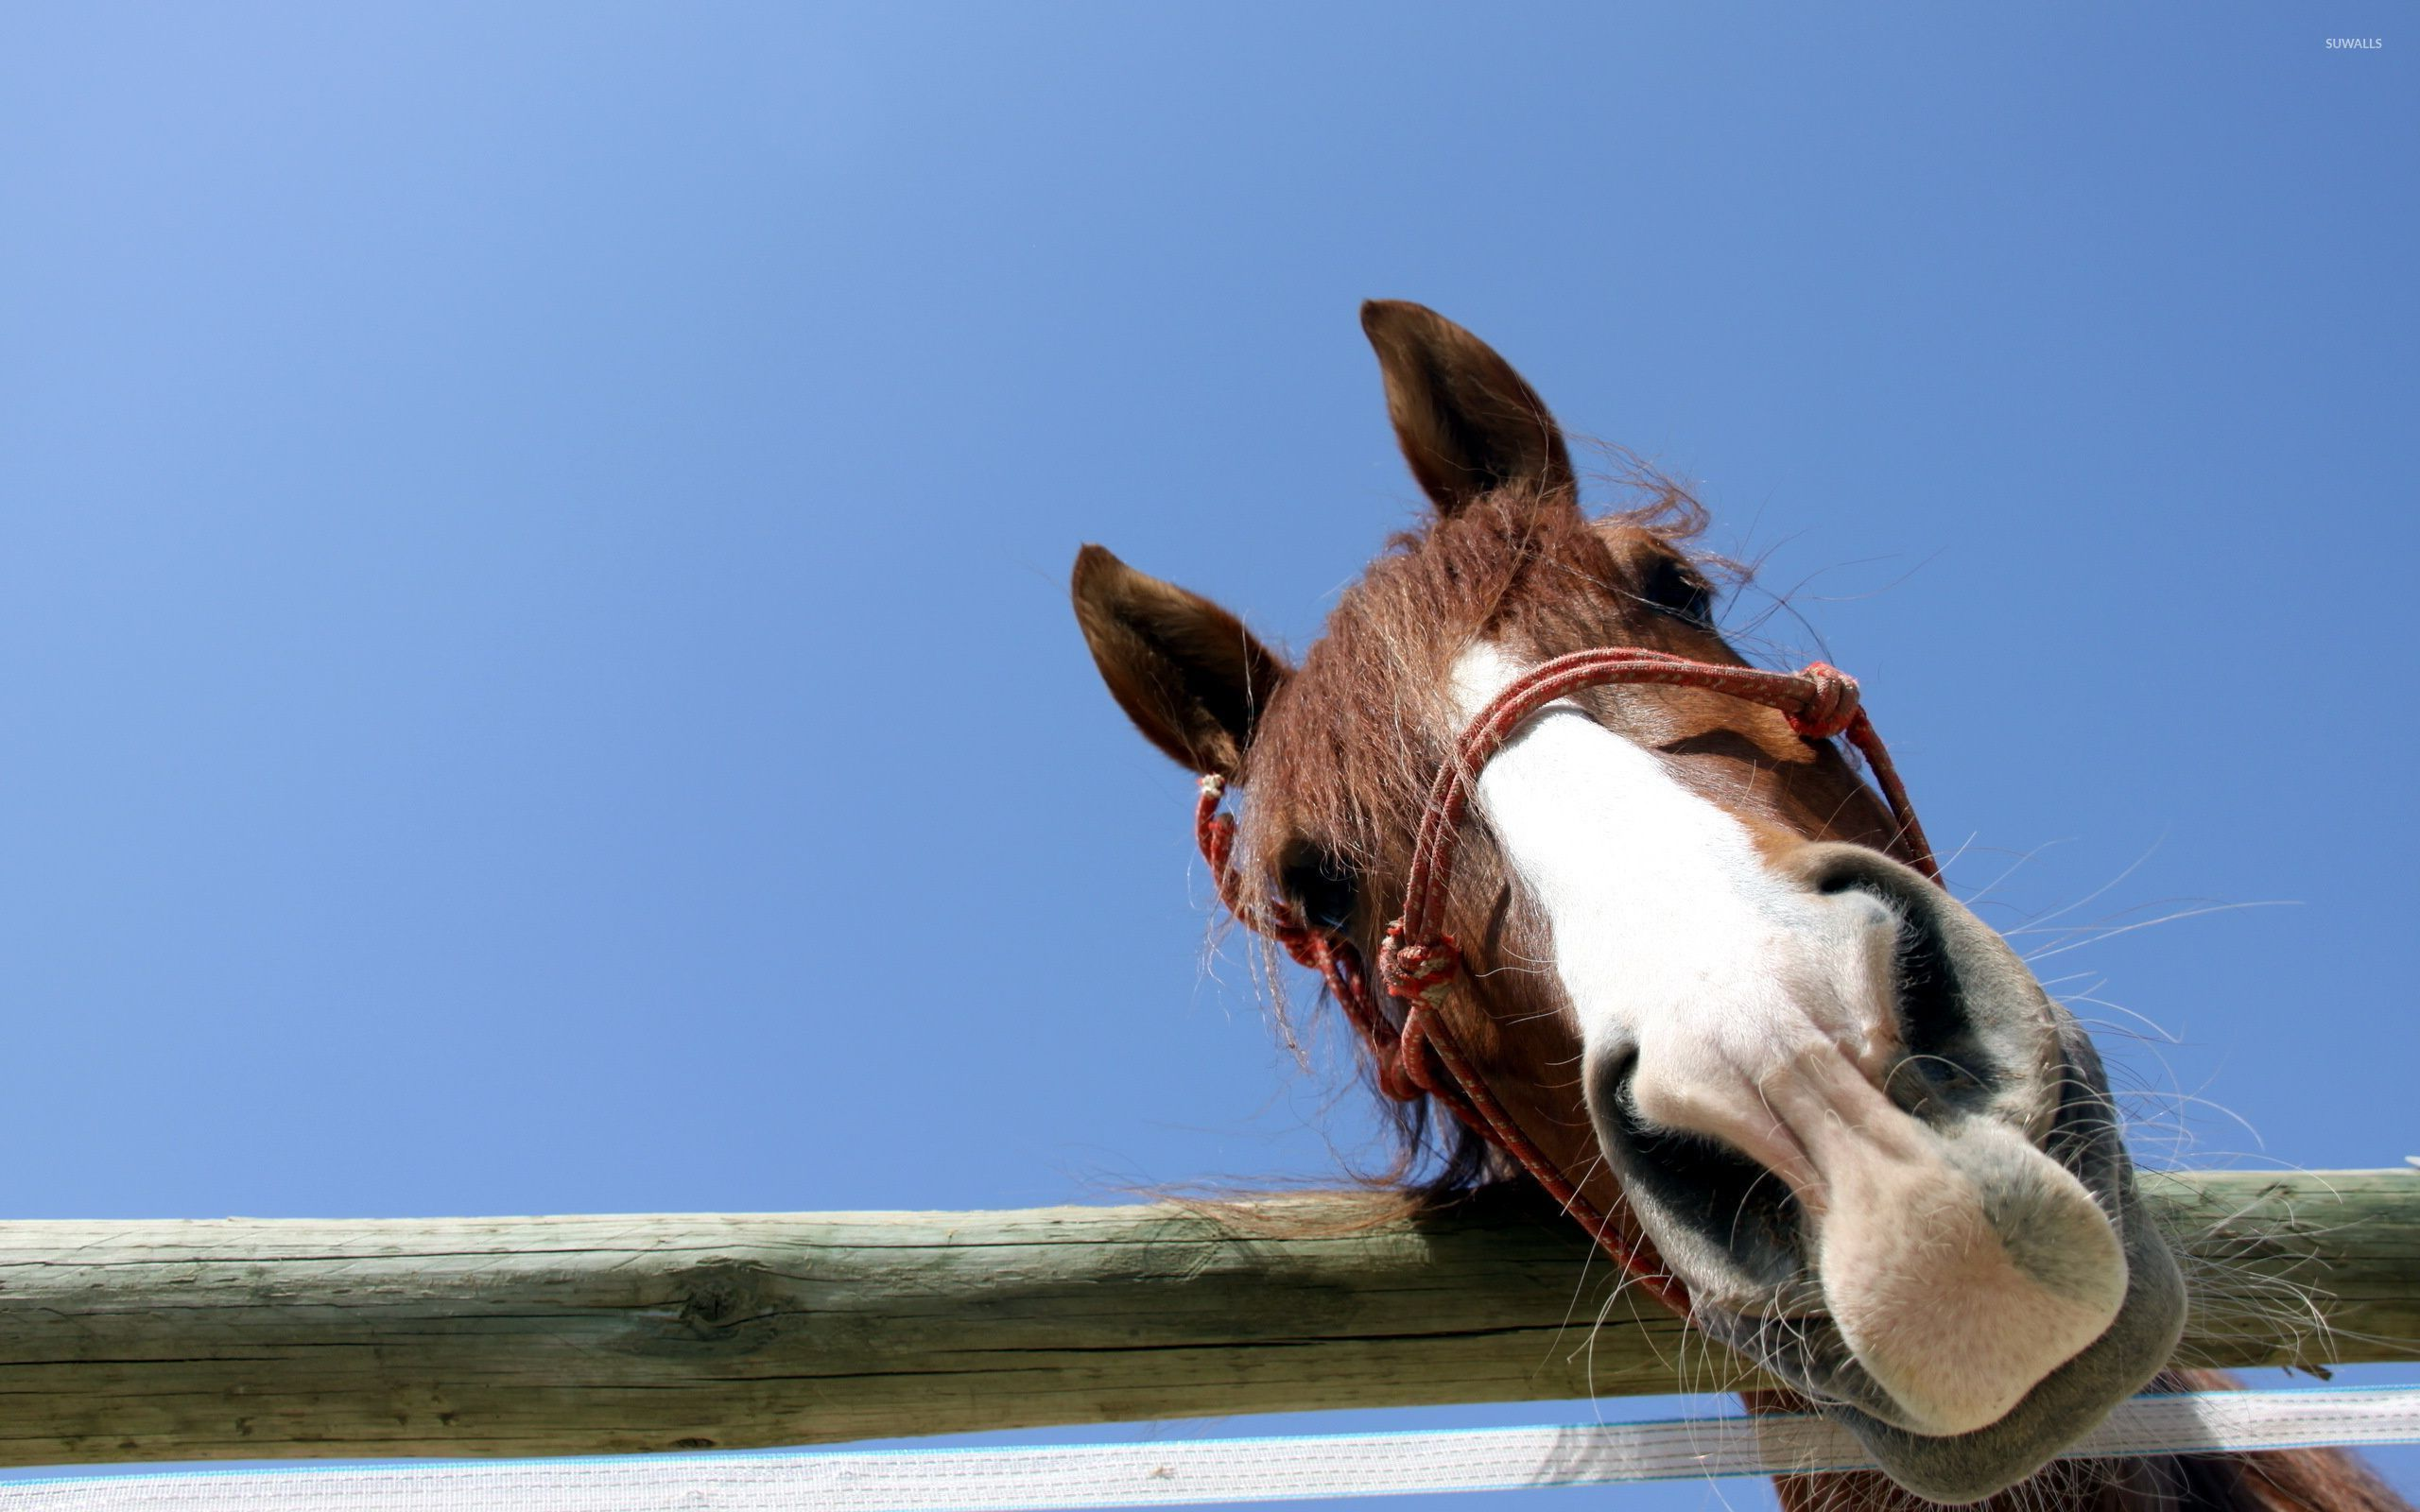 Curious horse wallpaper Animal wallpapers 49178